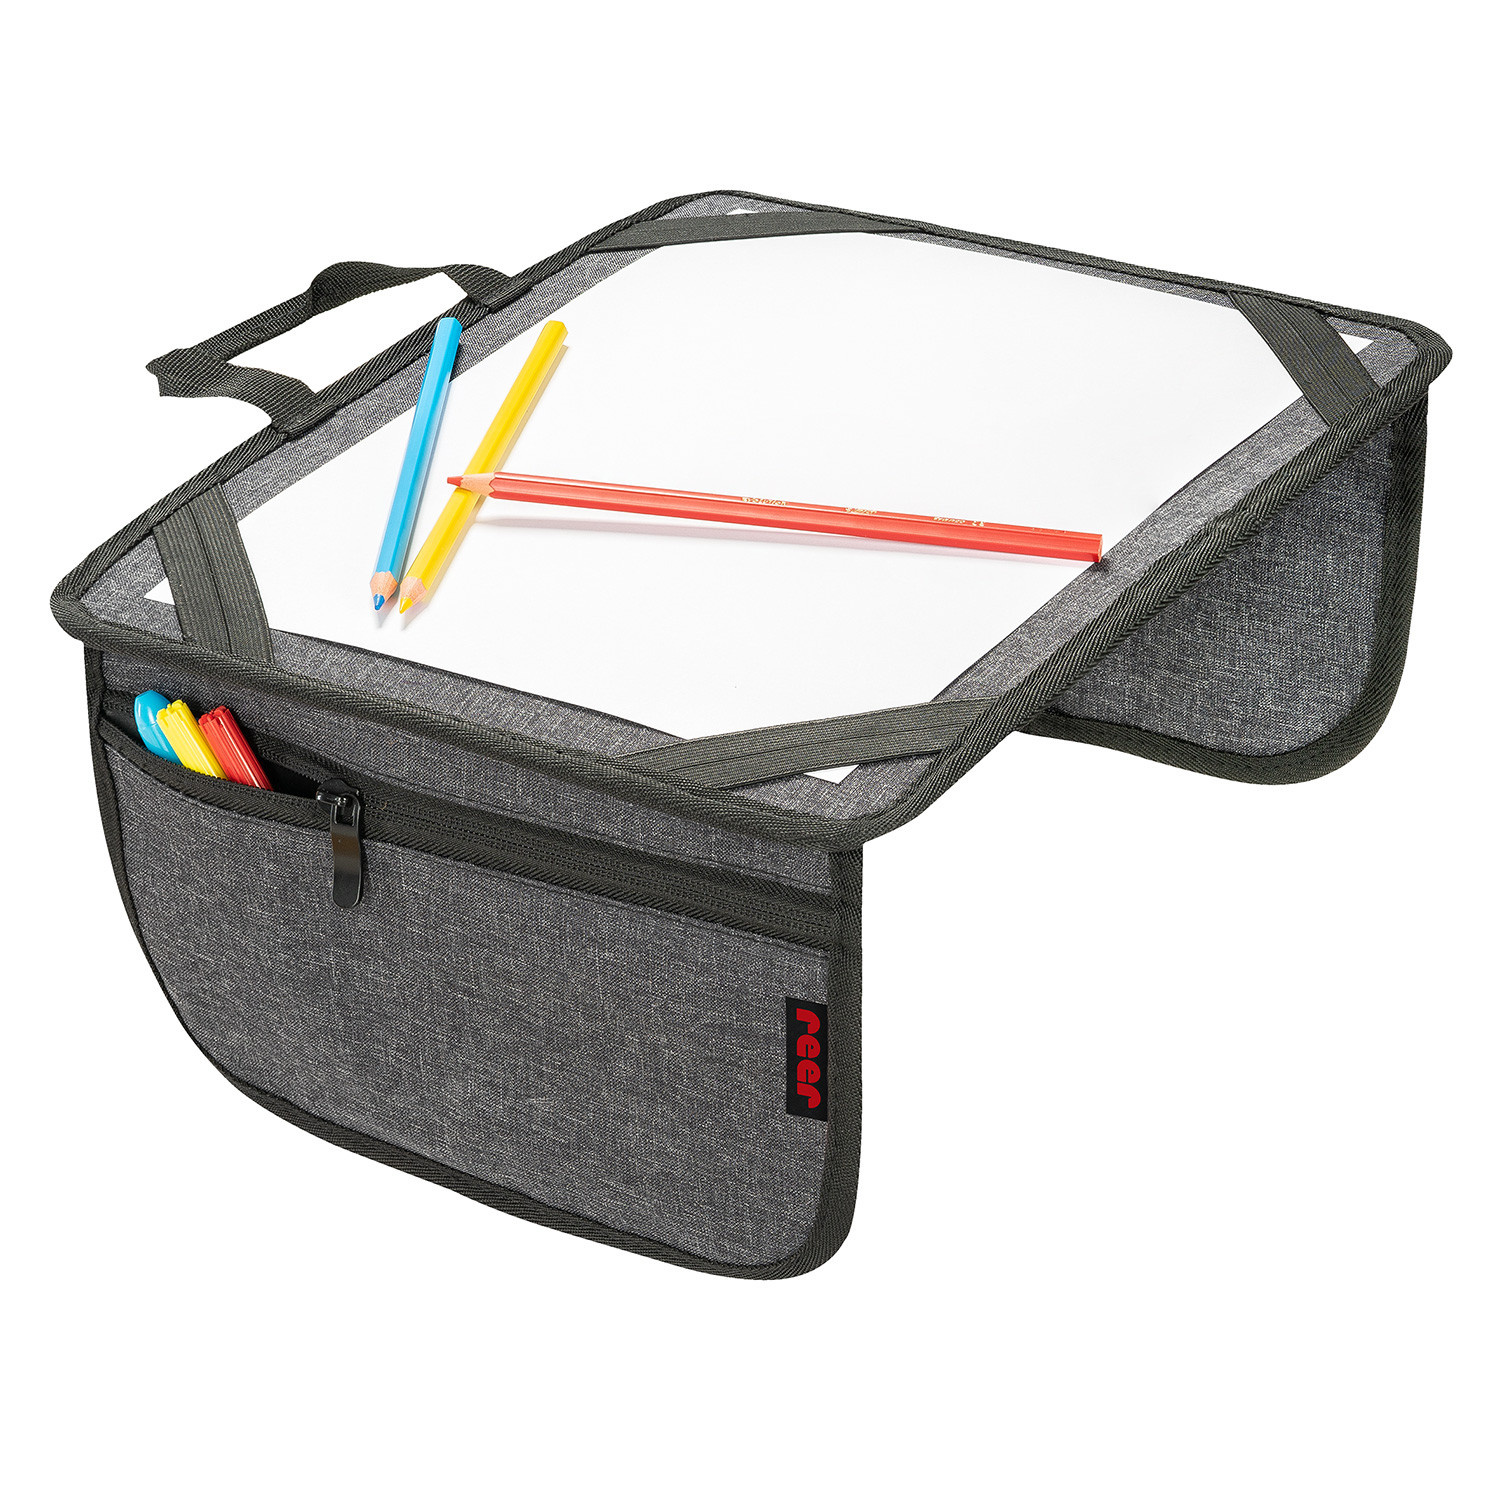 Reer Reer TravelKid Play travel tray